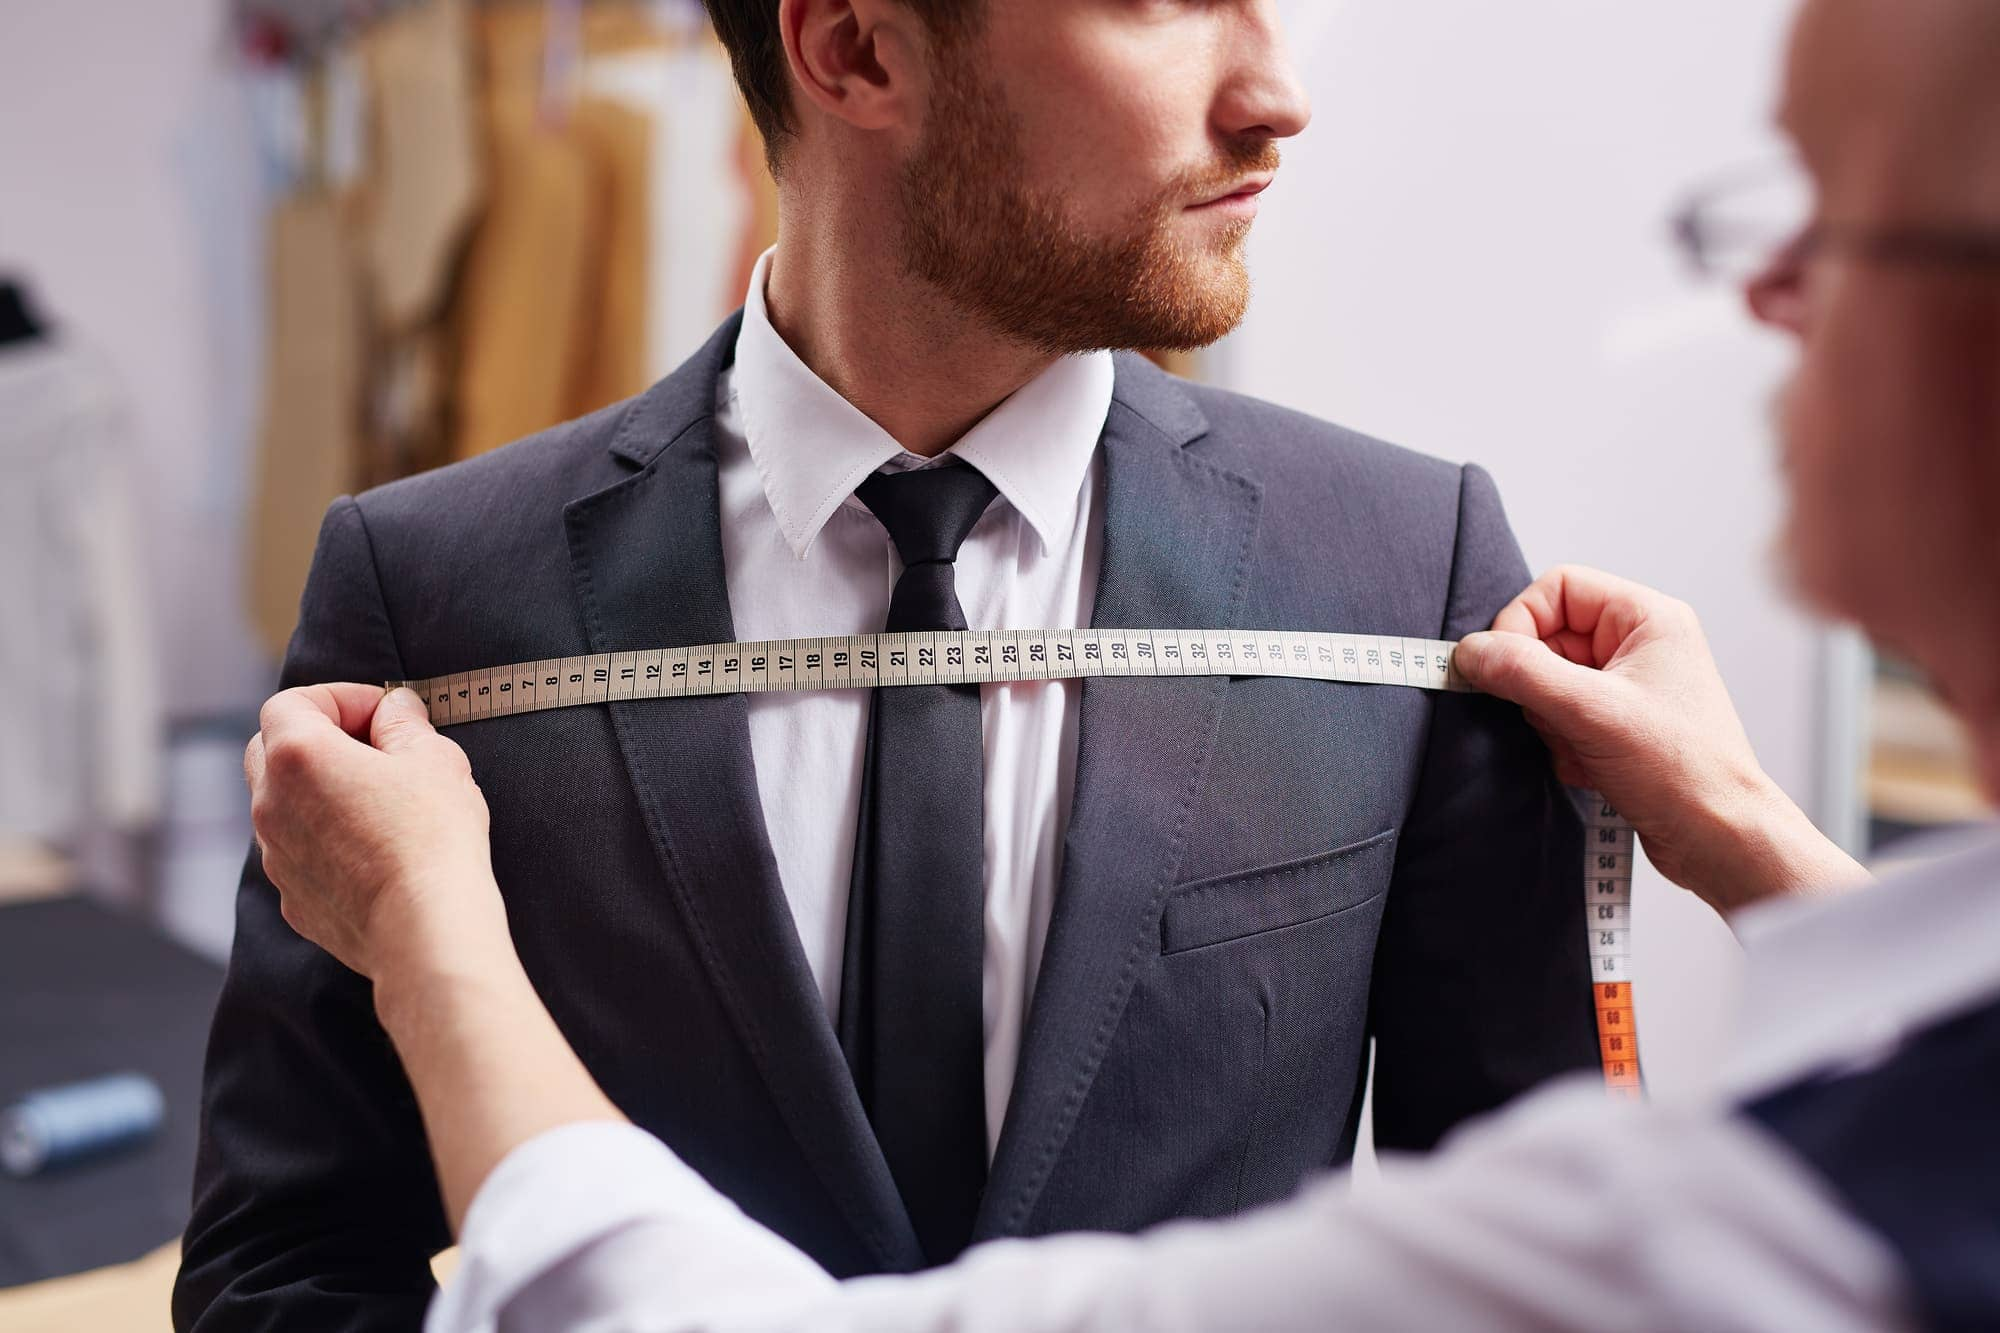 Dress Suits for Men: Bespoke vs Made-to-Measure